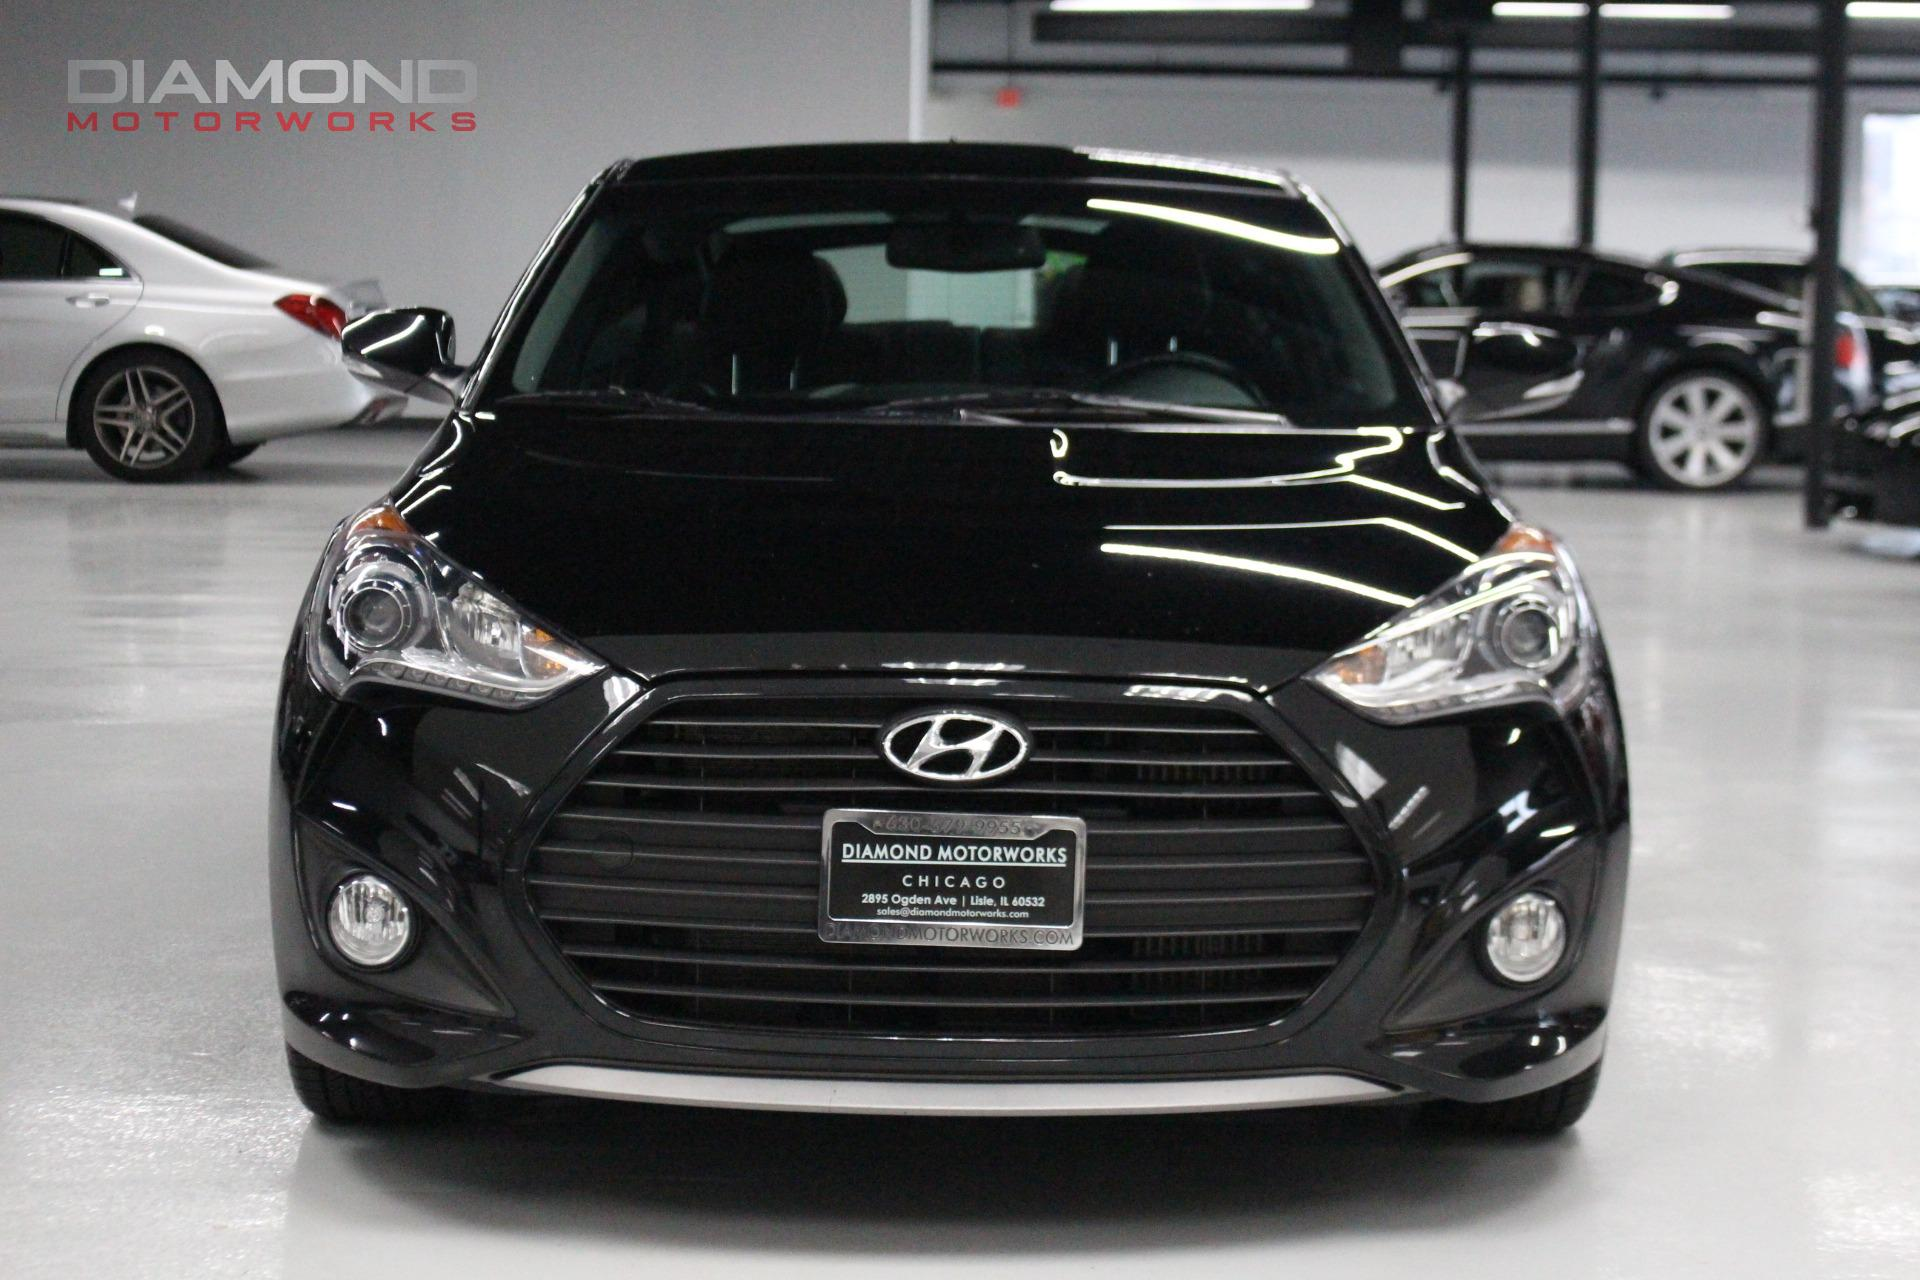 Used 2013 Hyundai Veloster Turbo